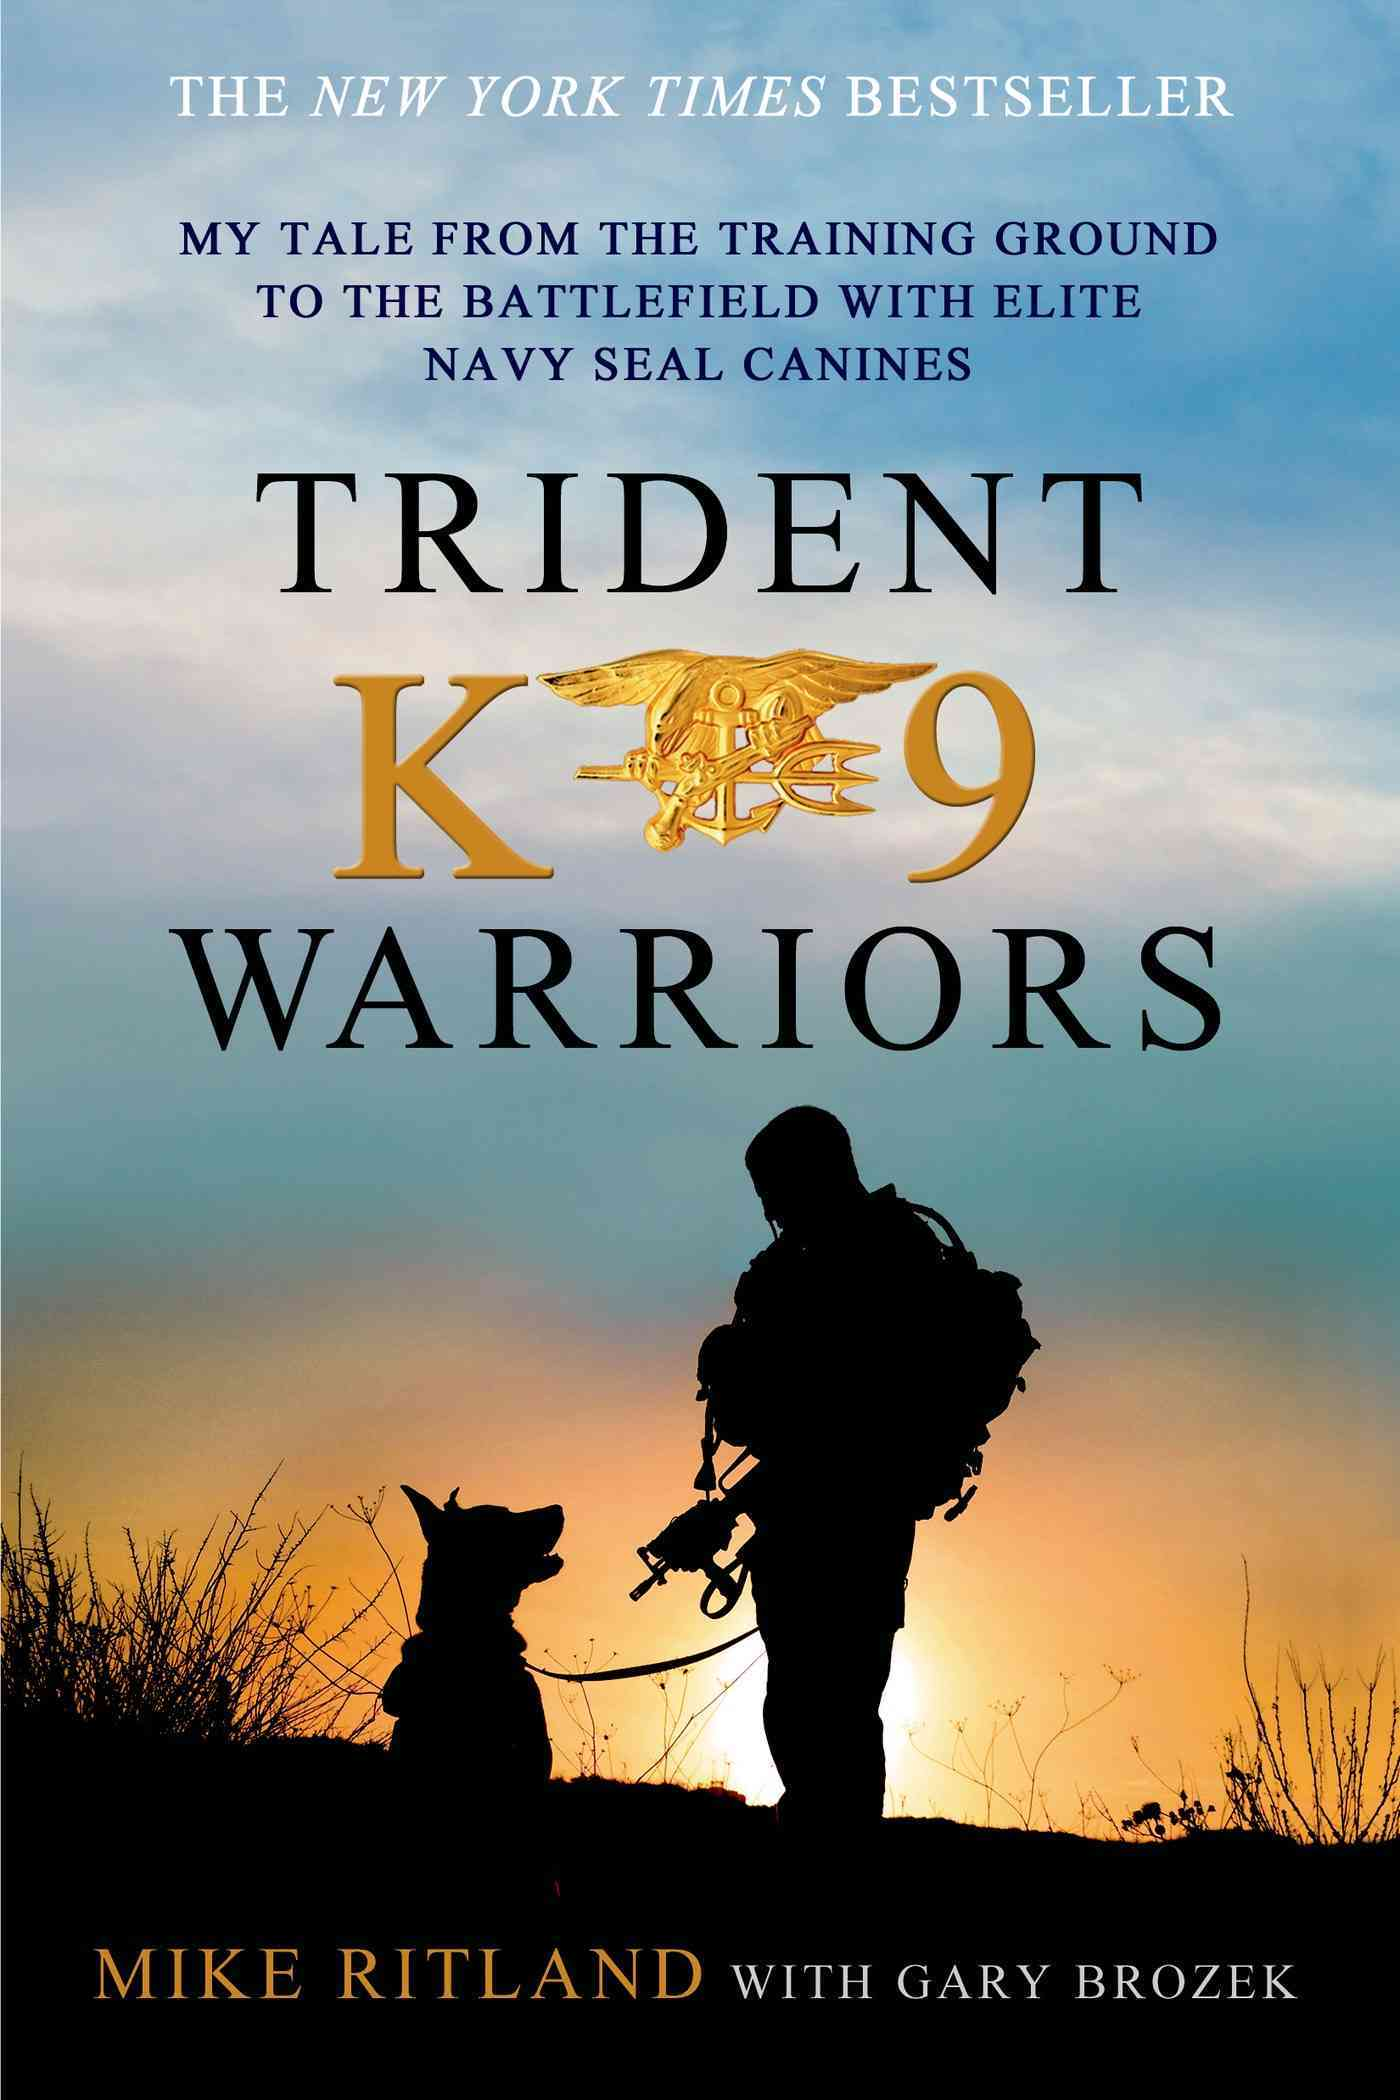 Trident K9 Warriors: My Tale from the Training Ground to the Battlefield With Elite Navy Seal Canines (Paperback)